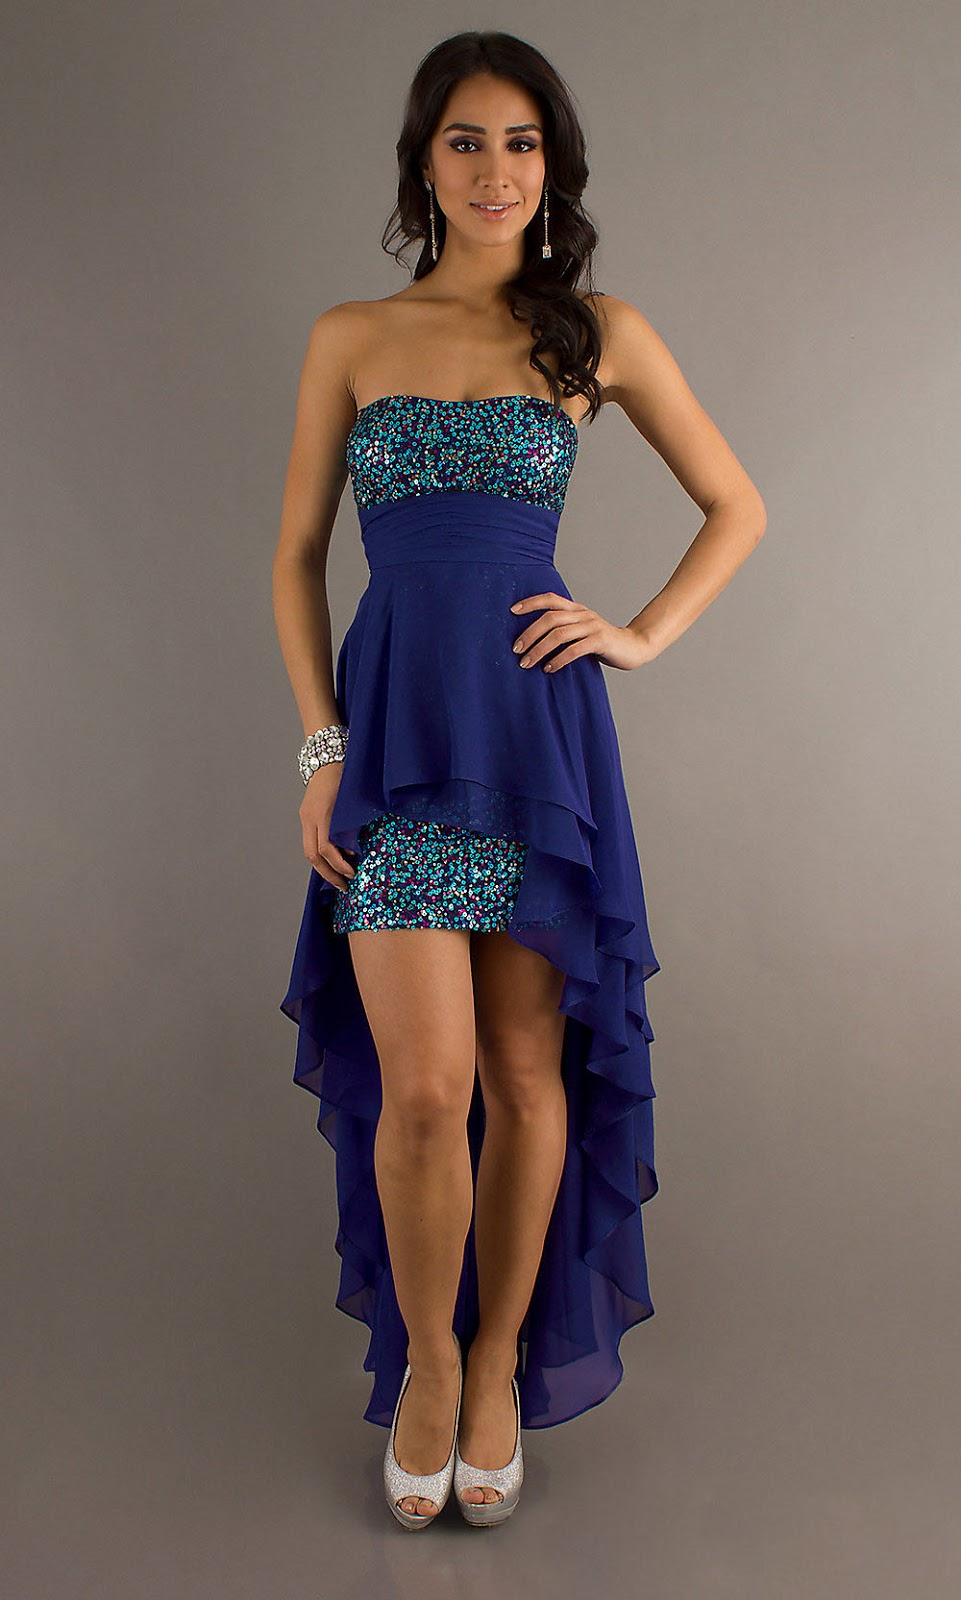 LONG LAYERED HAIRCUT: HIGH LOW PROM DRESSES ARE UNBALANCEDRed High Low Prom Dresses 2013